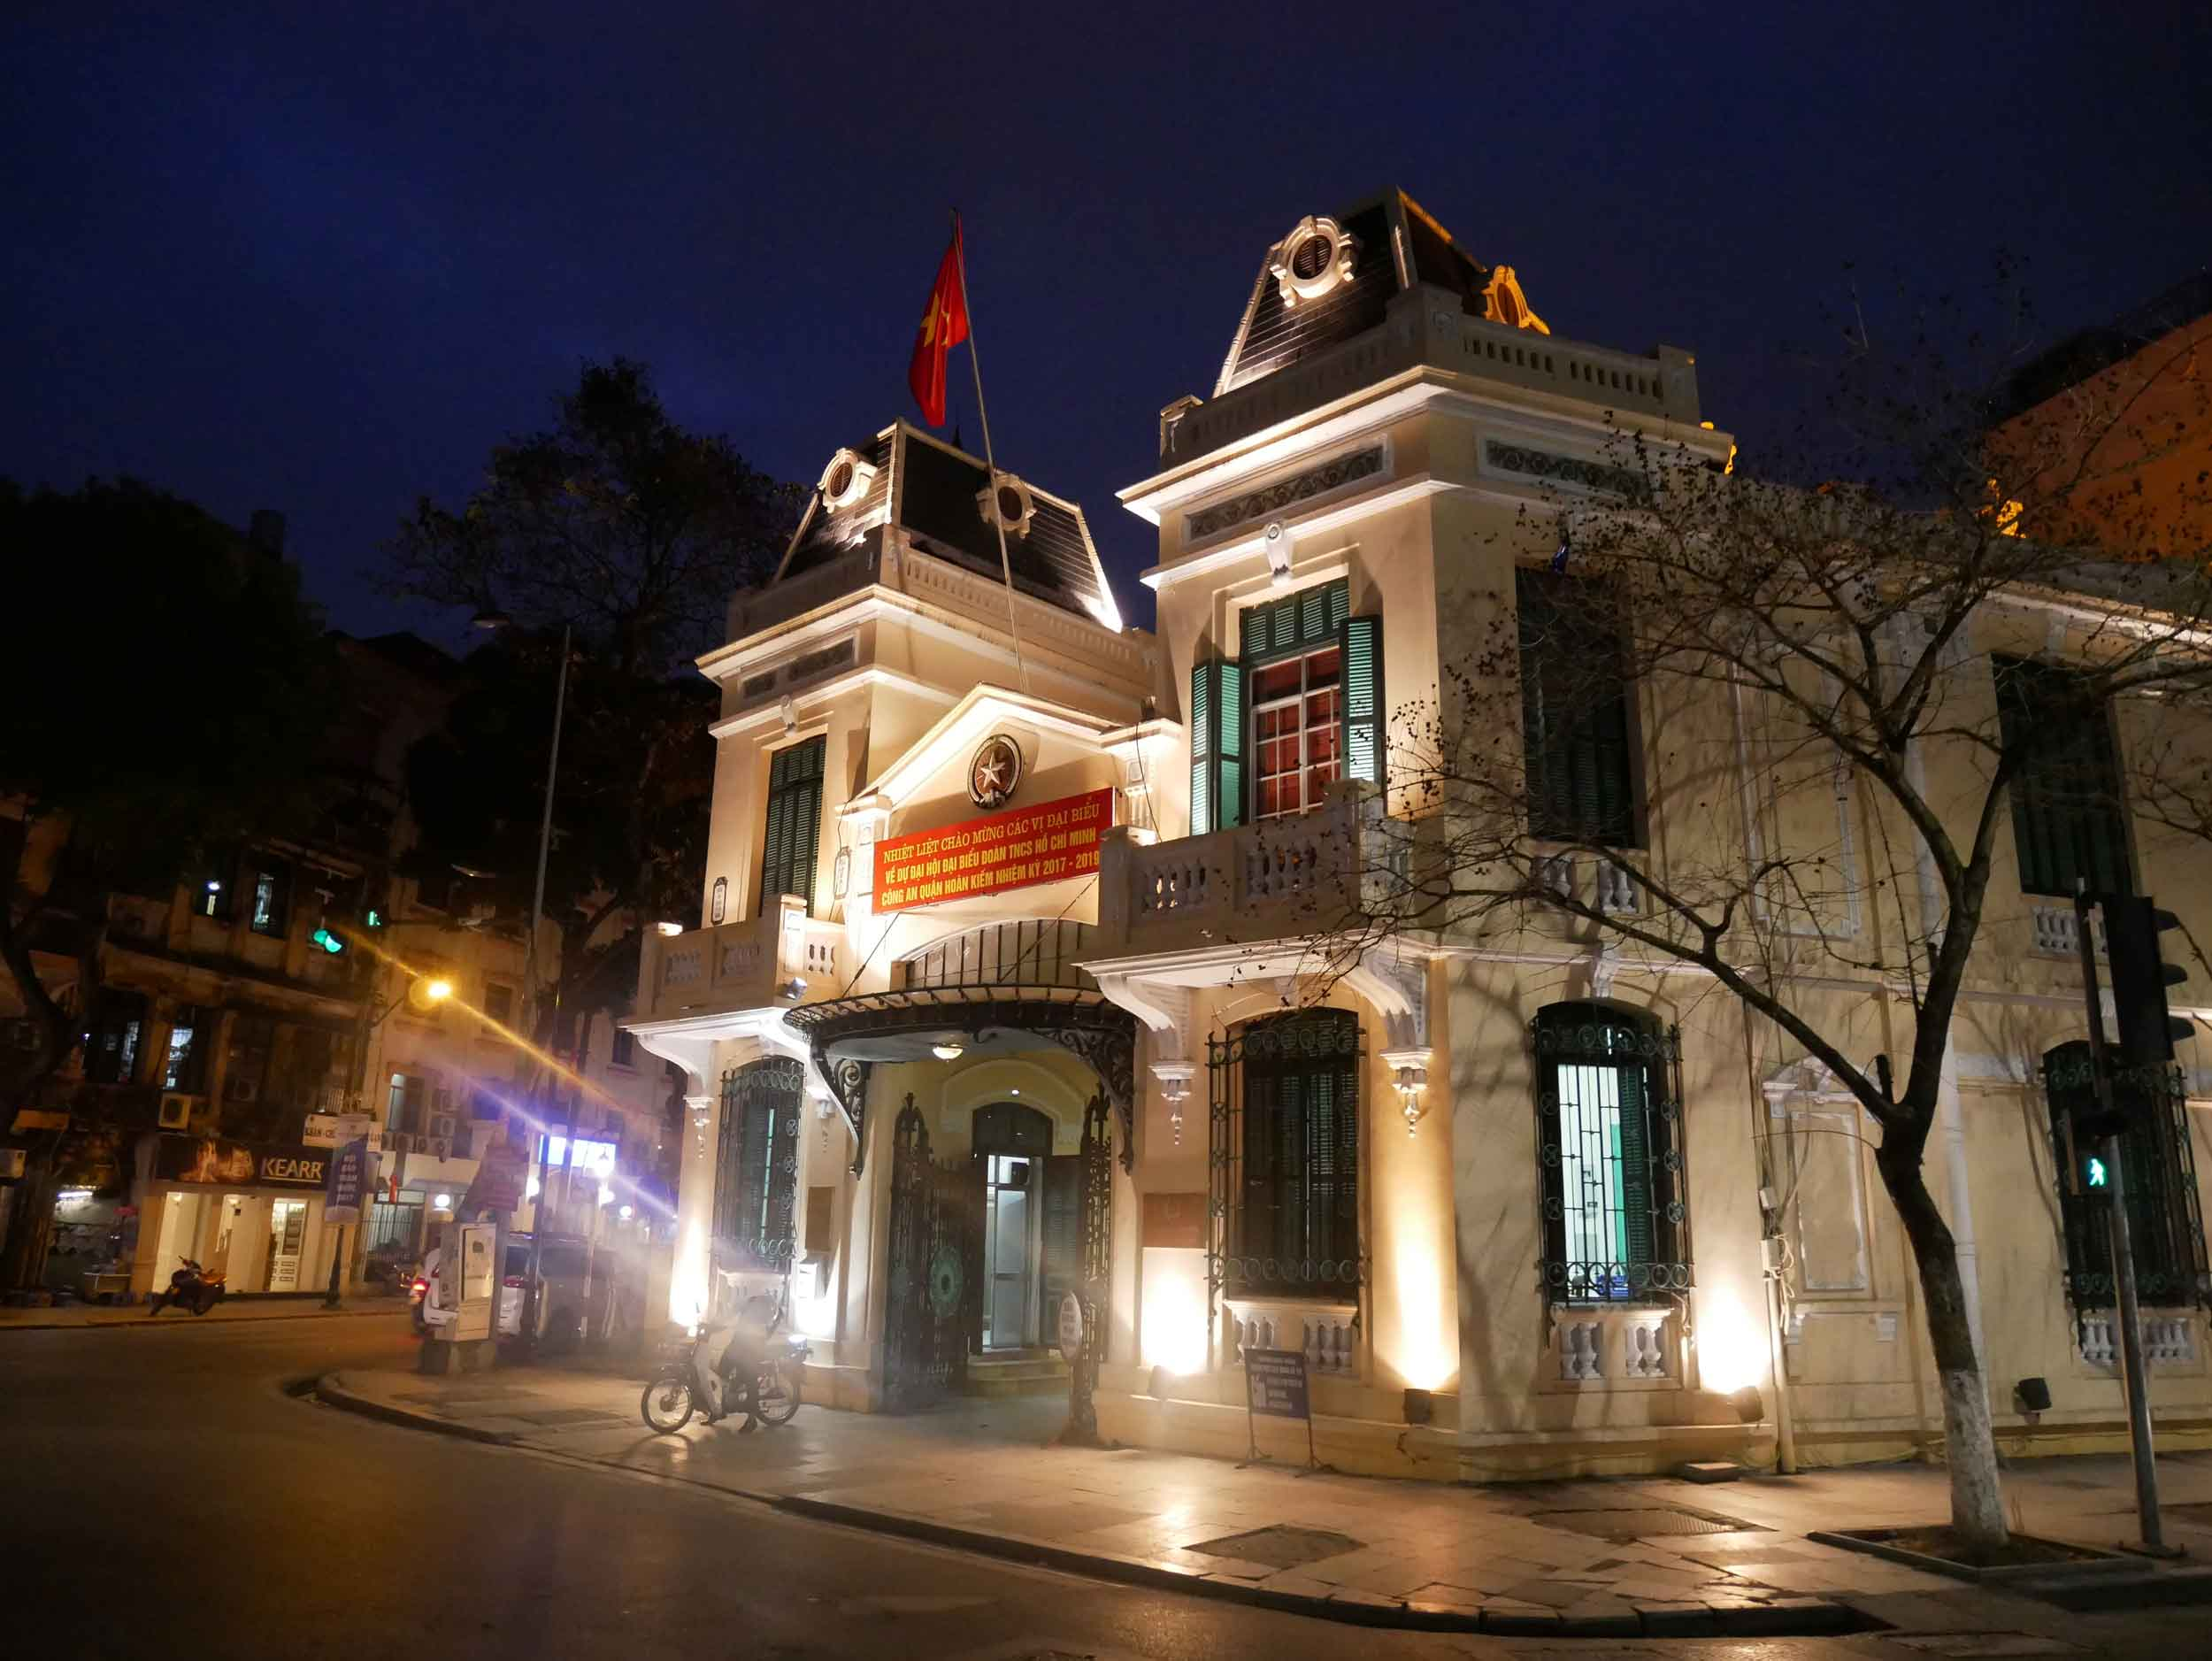 Like Ho Chi Minh, Hanoi features colonial buildings throughout the city.